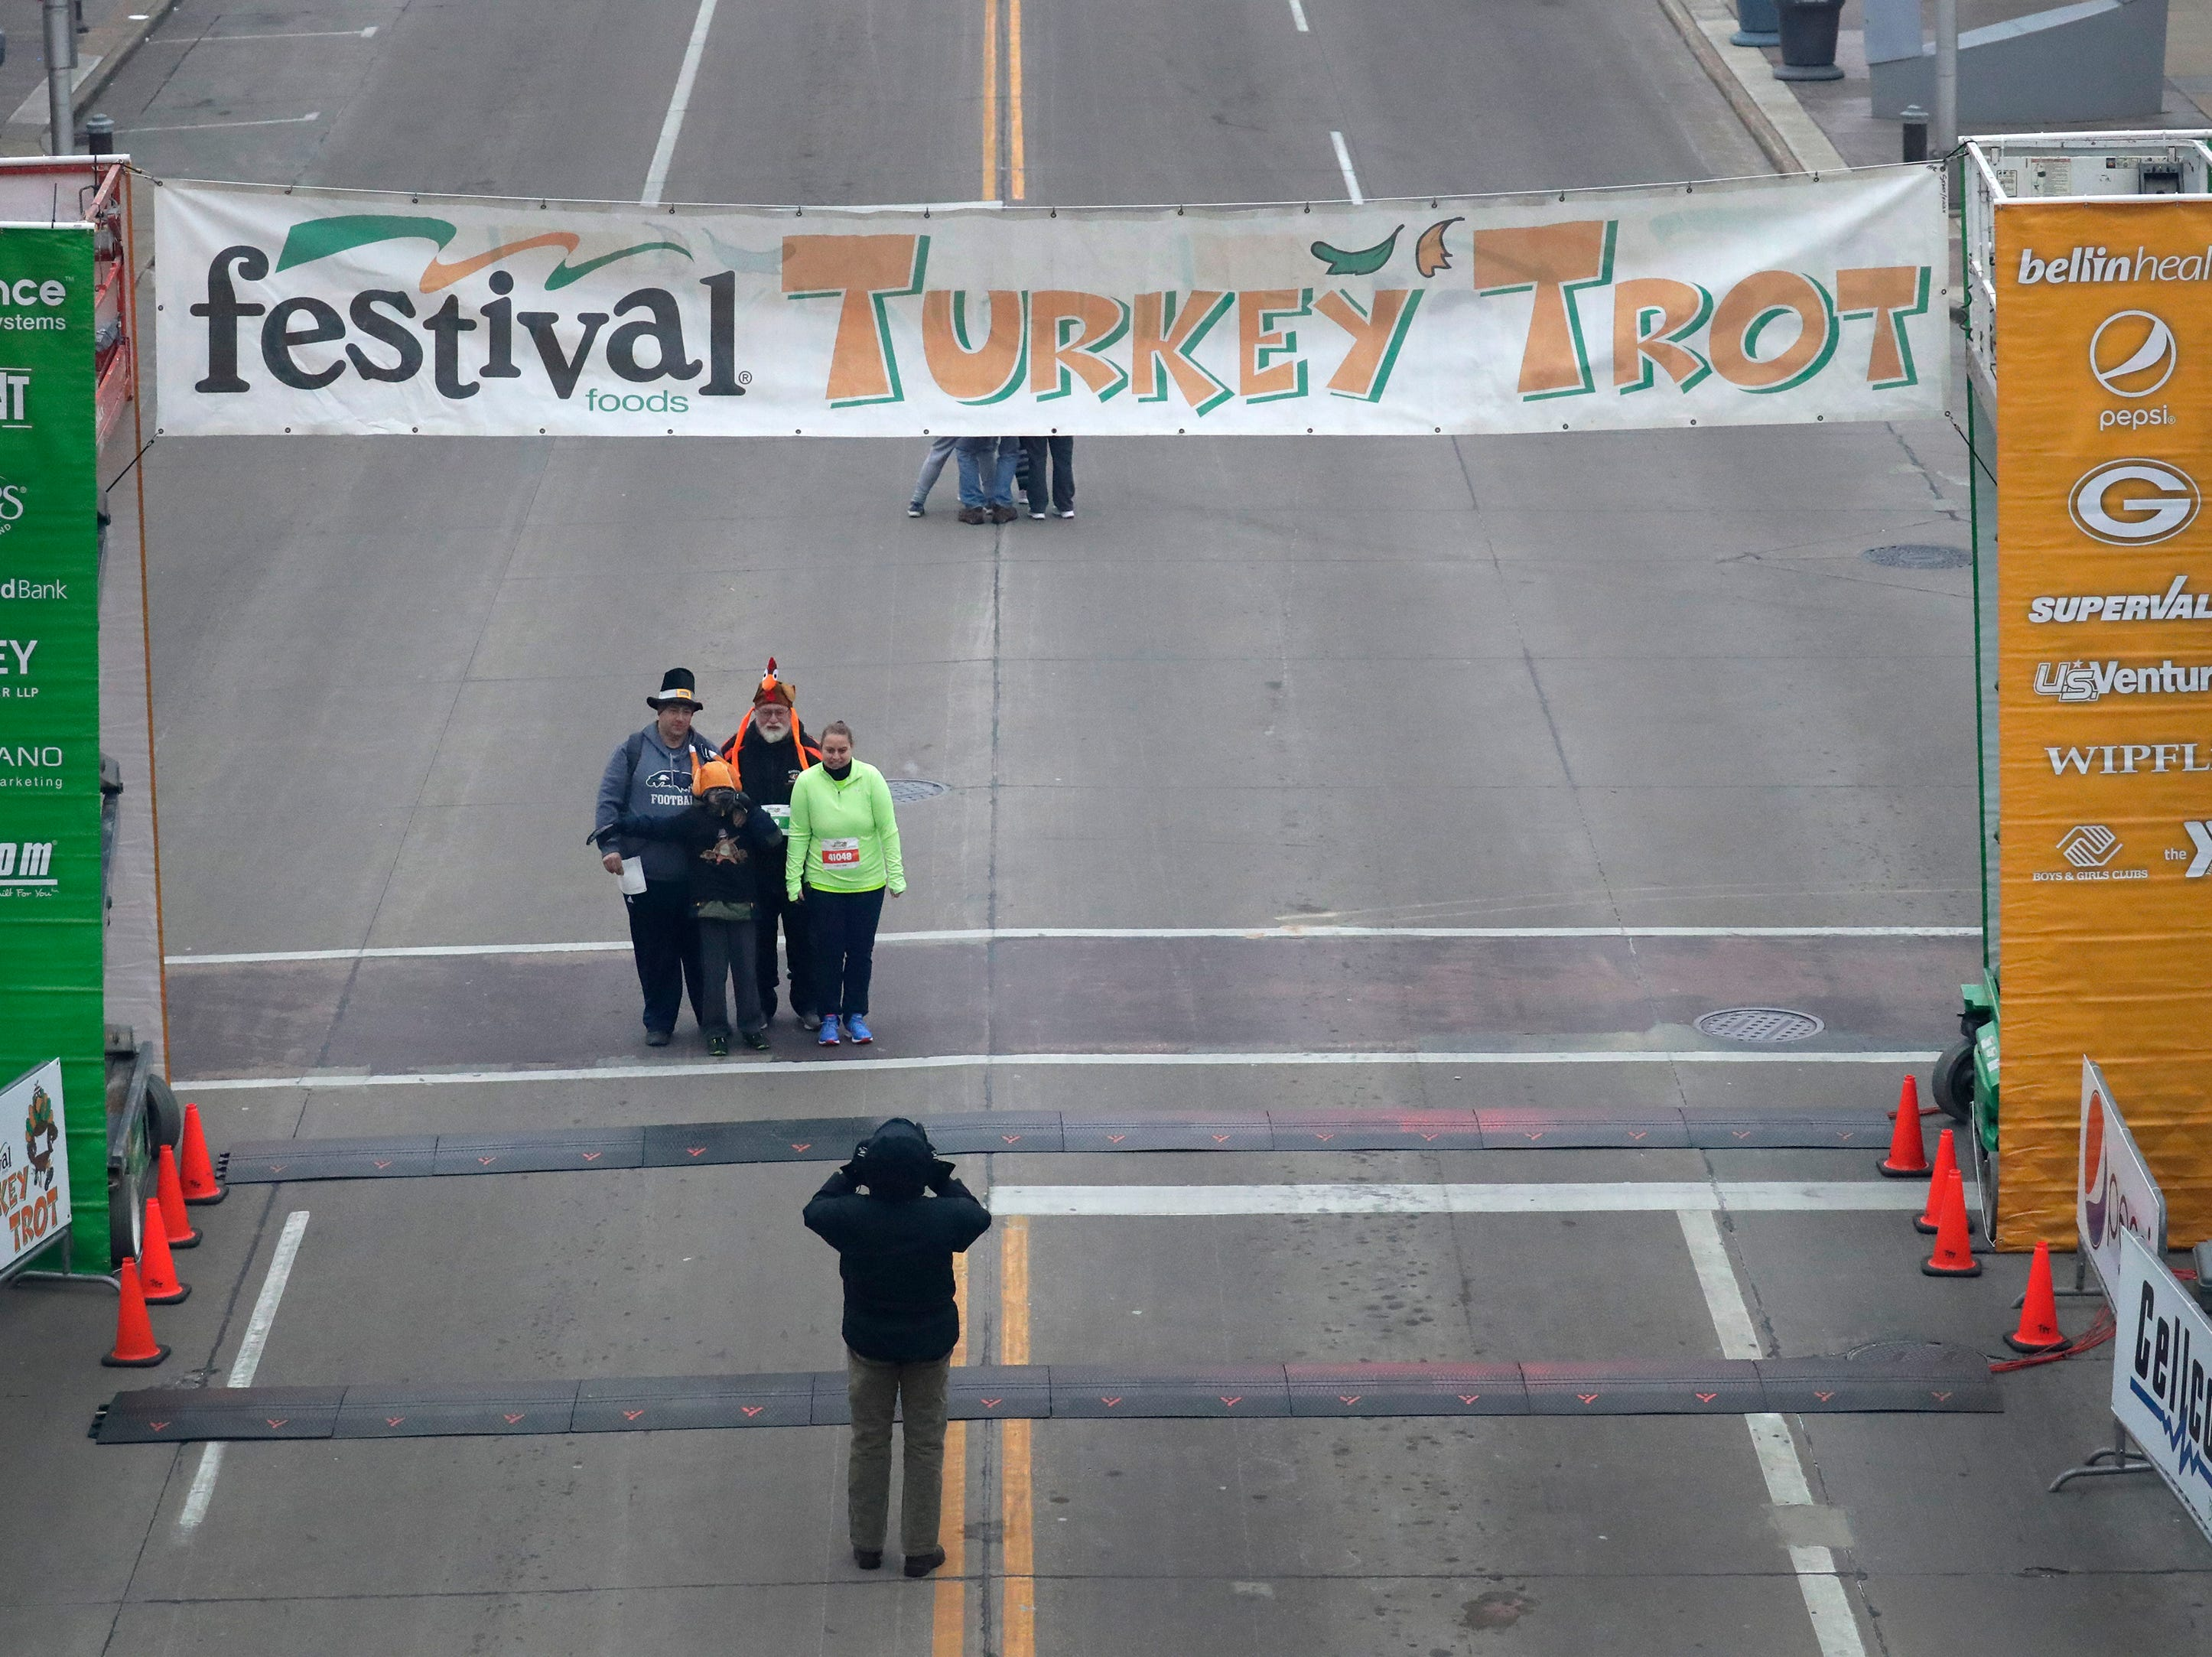 Members of the Brien, Bourassa and Kramer familes pose for a photo at the starting line prior to the 11th Annual Festival Foods Turkey Trot Thursday, November 22, 2018, in Appleton, Wis. Dan Powers/USA TODAY NETWORK-Wisconsin